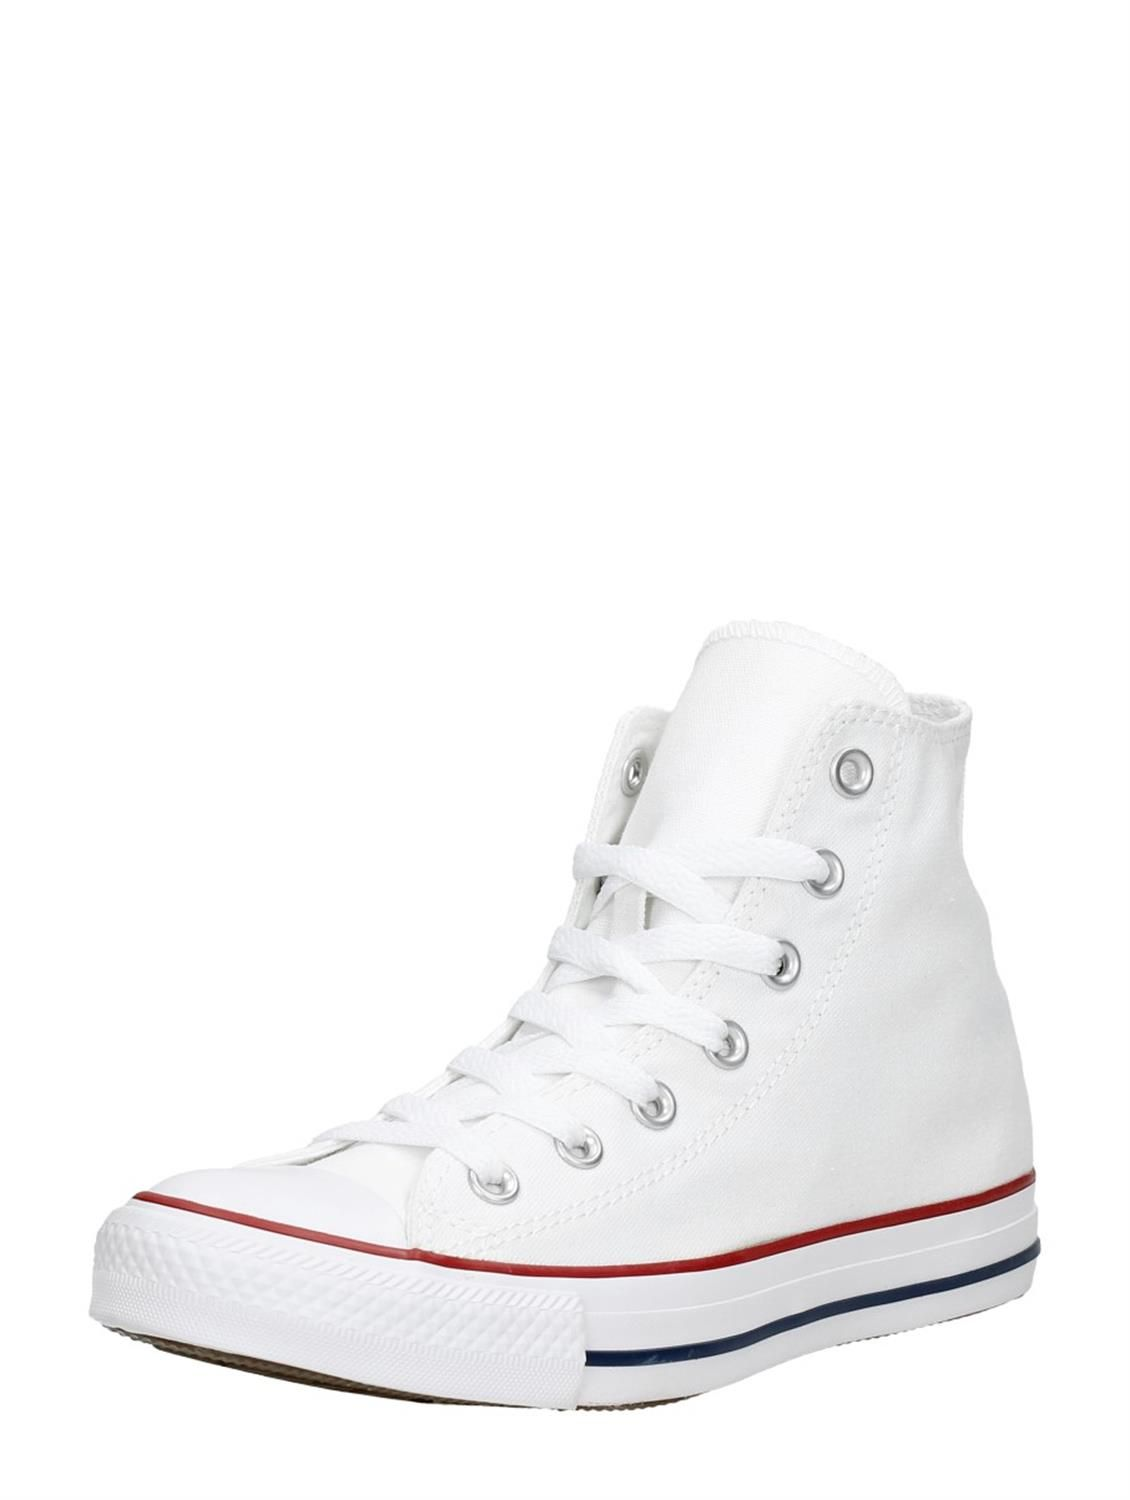 226278b9e8b Converse Chuck Taylor All Star hoog wit dames | CONVERSE in 2019 ...